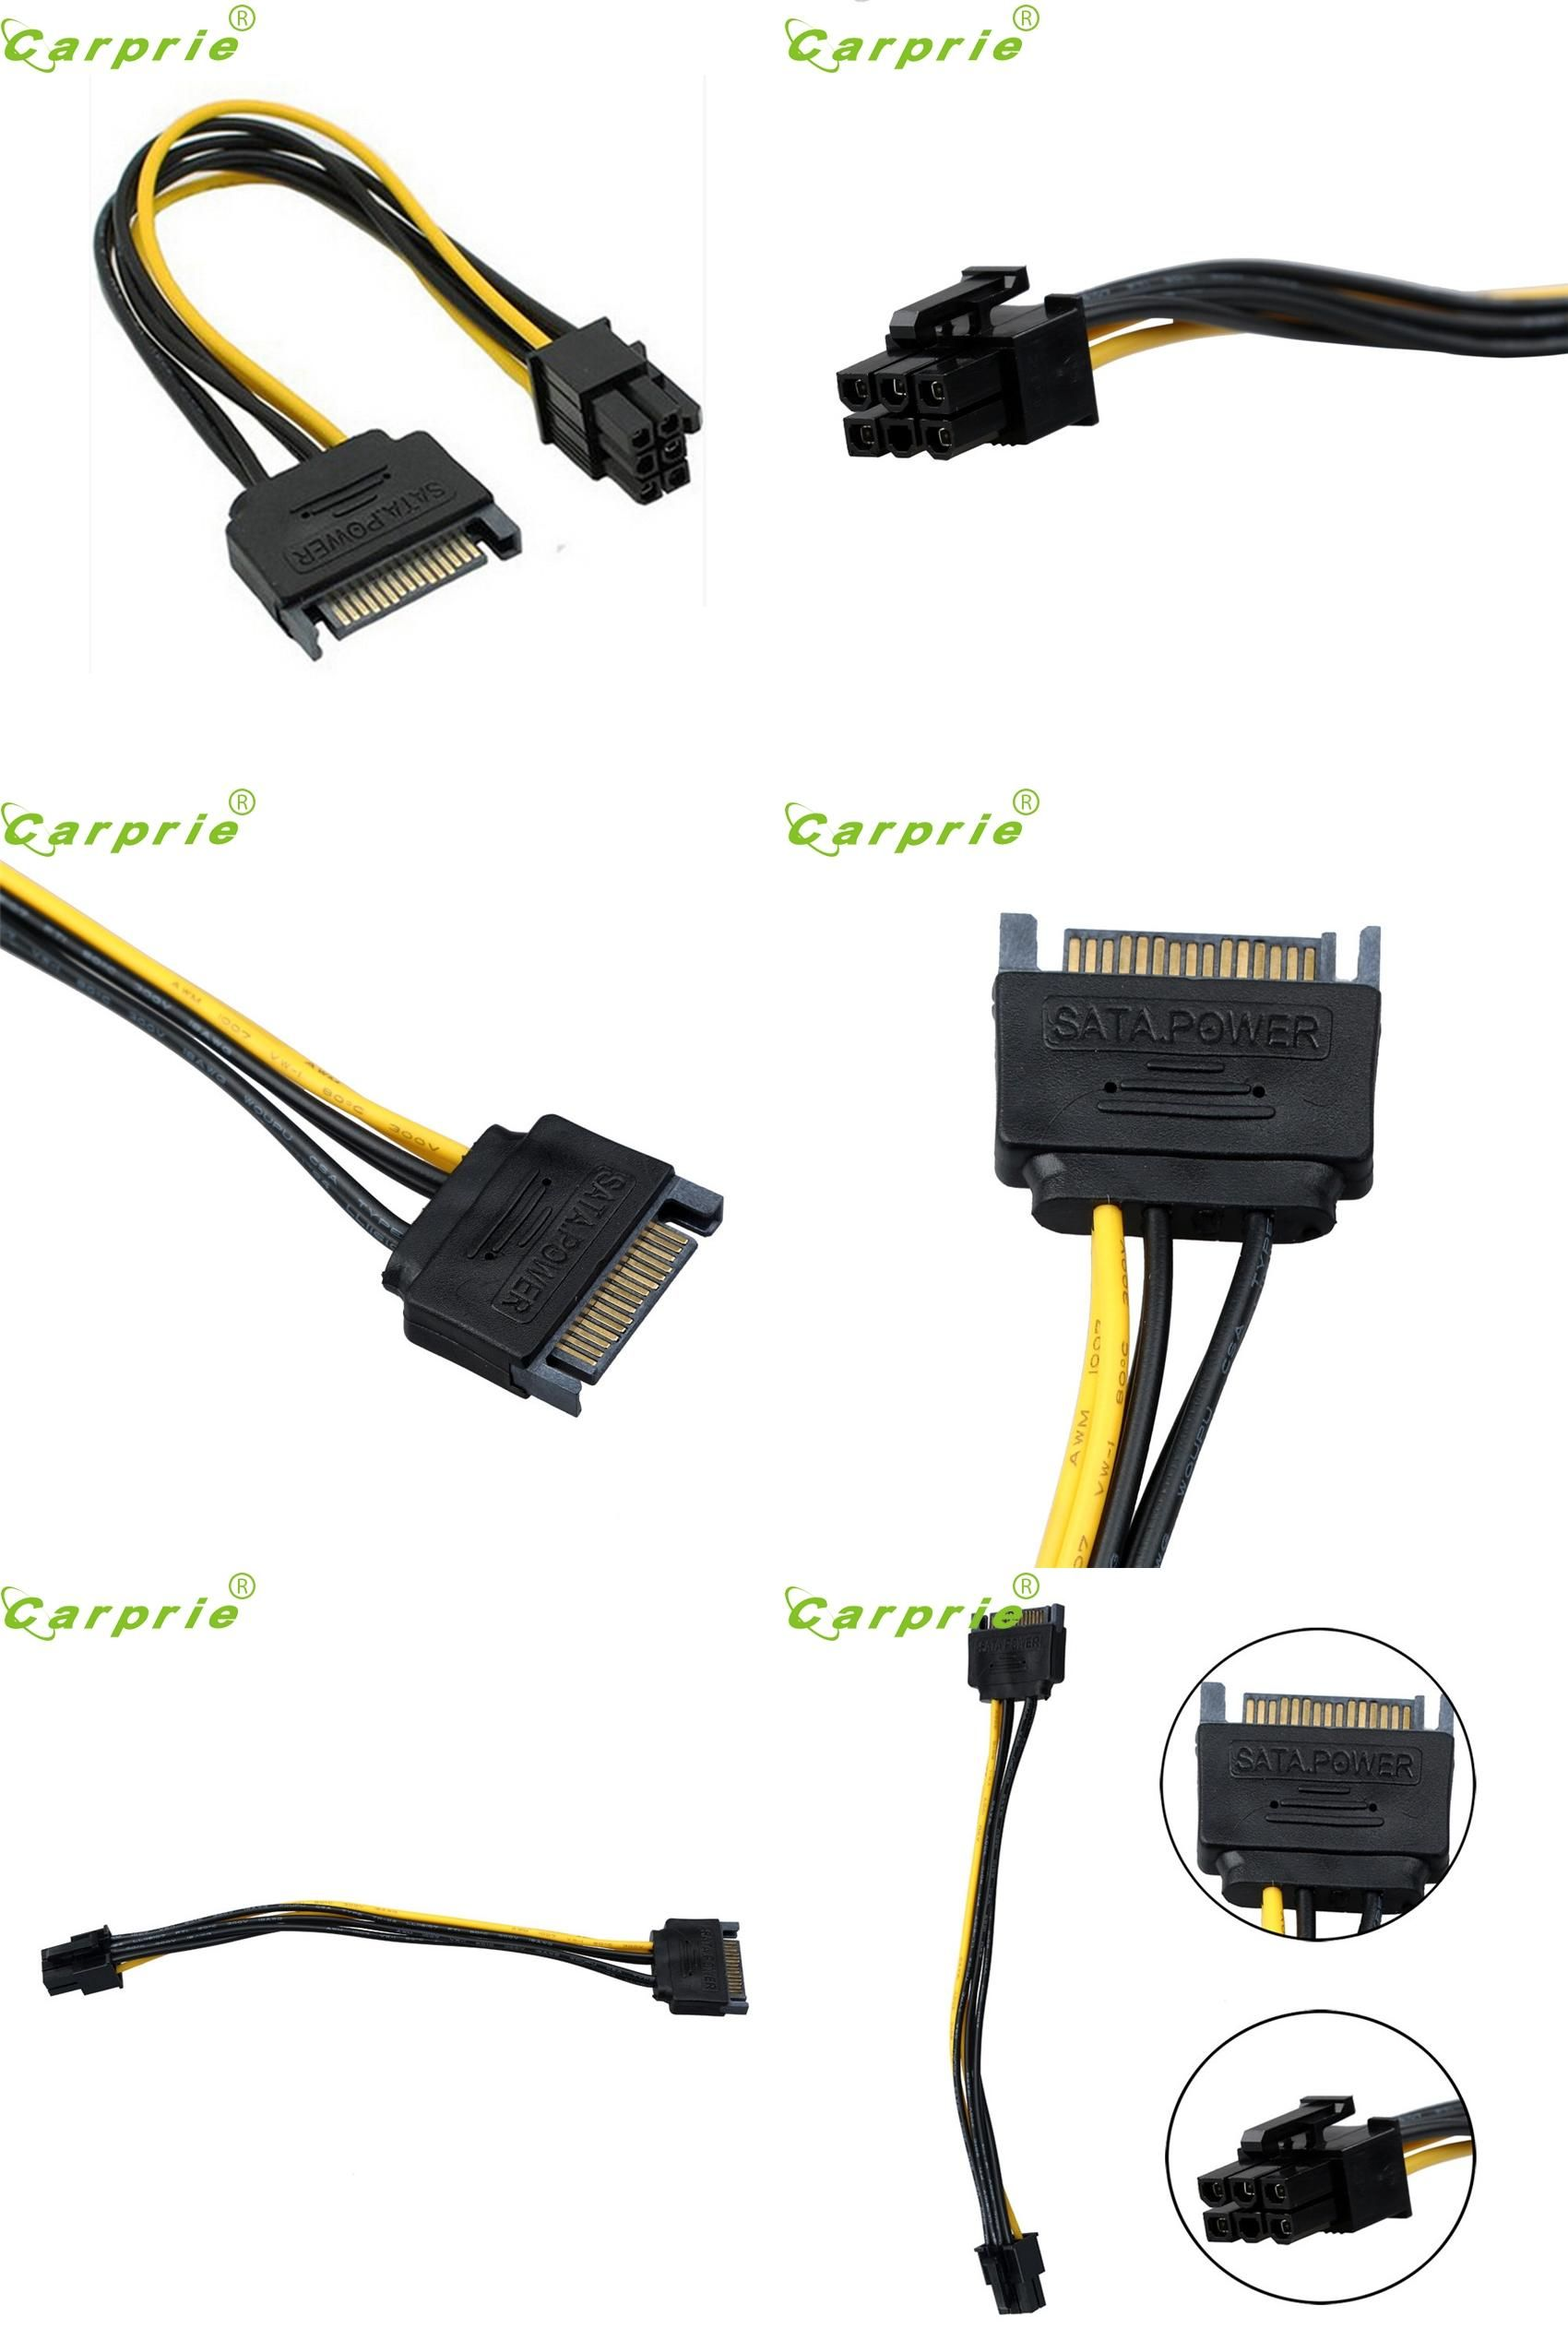 609ef9da1eaeeab3200ad22d8595cd69 visit to buy] carprie e5 sata power cable 15 pin to 6 pin pci  at n-0.co